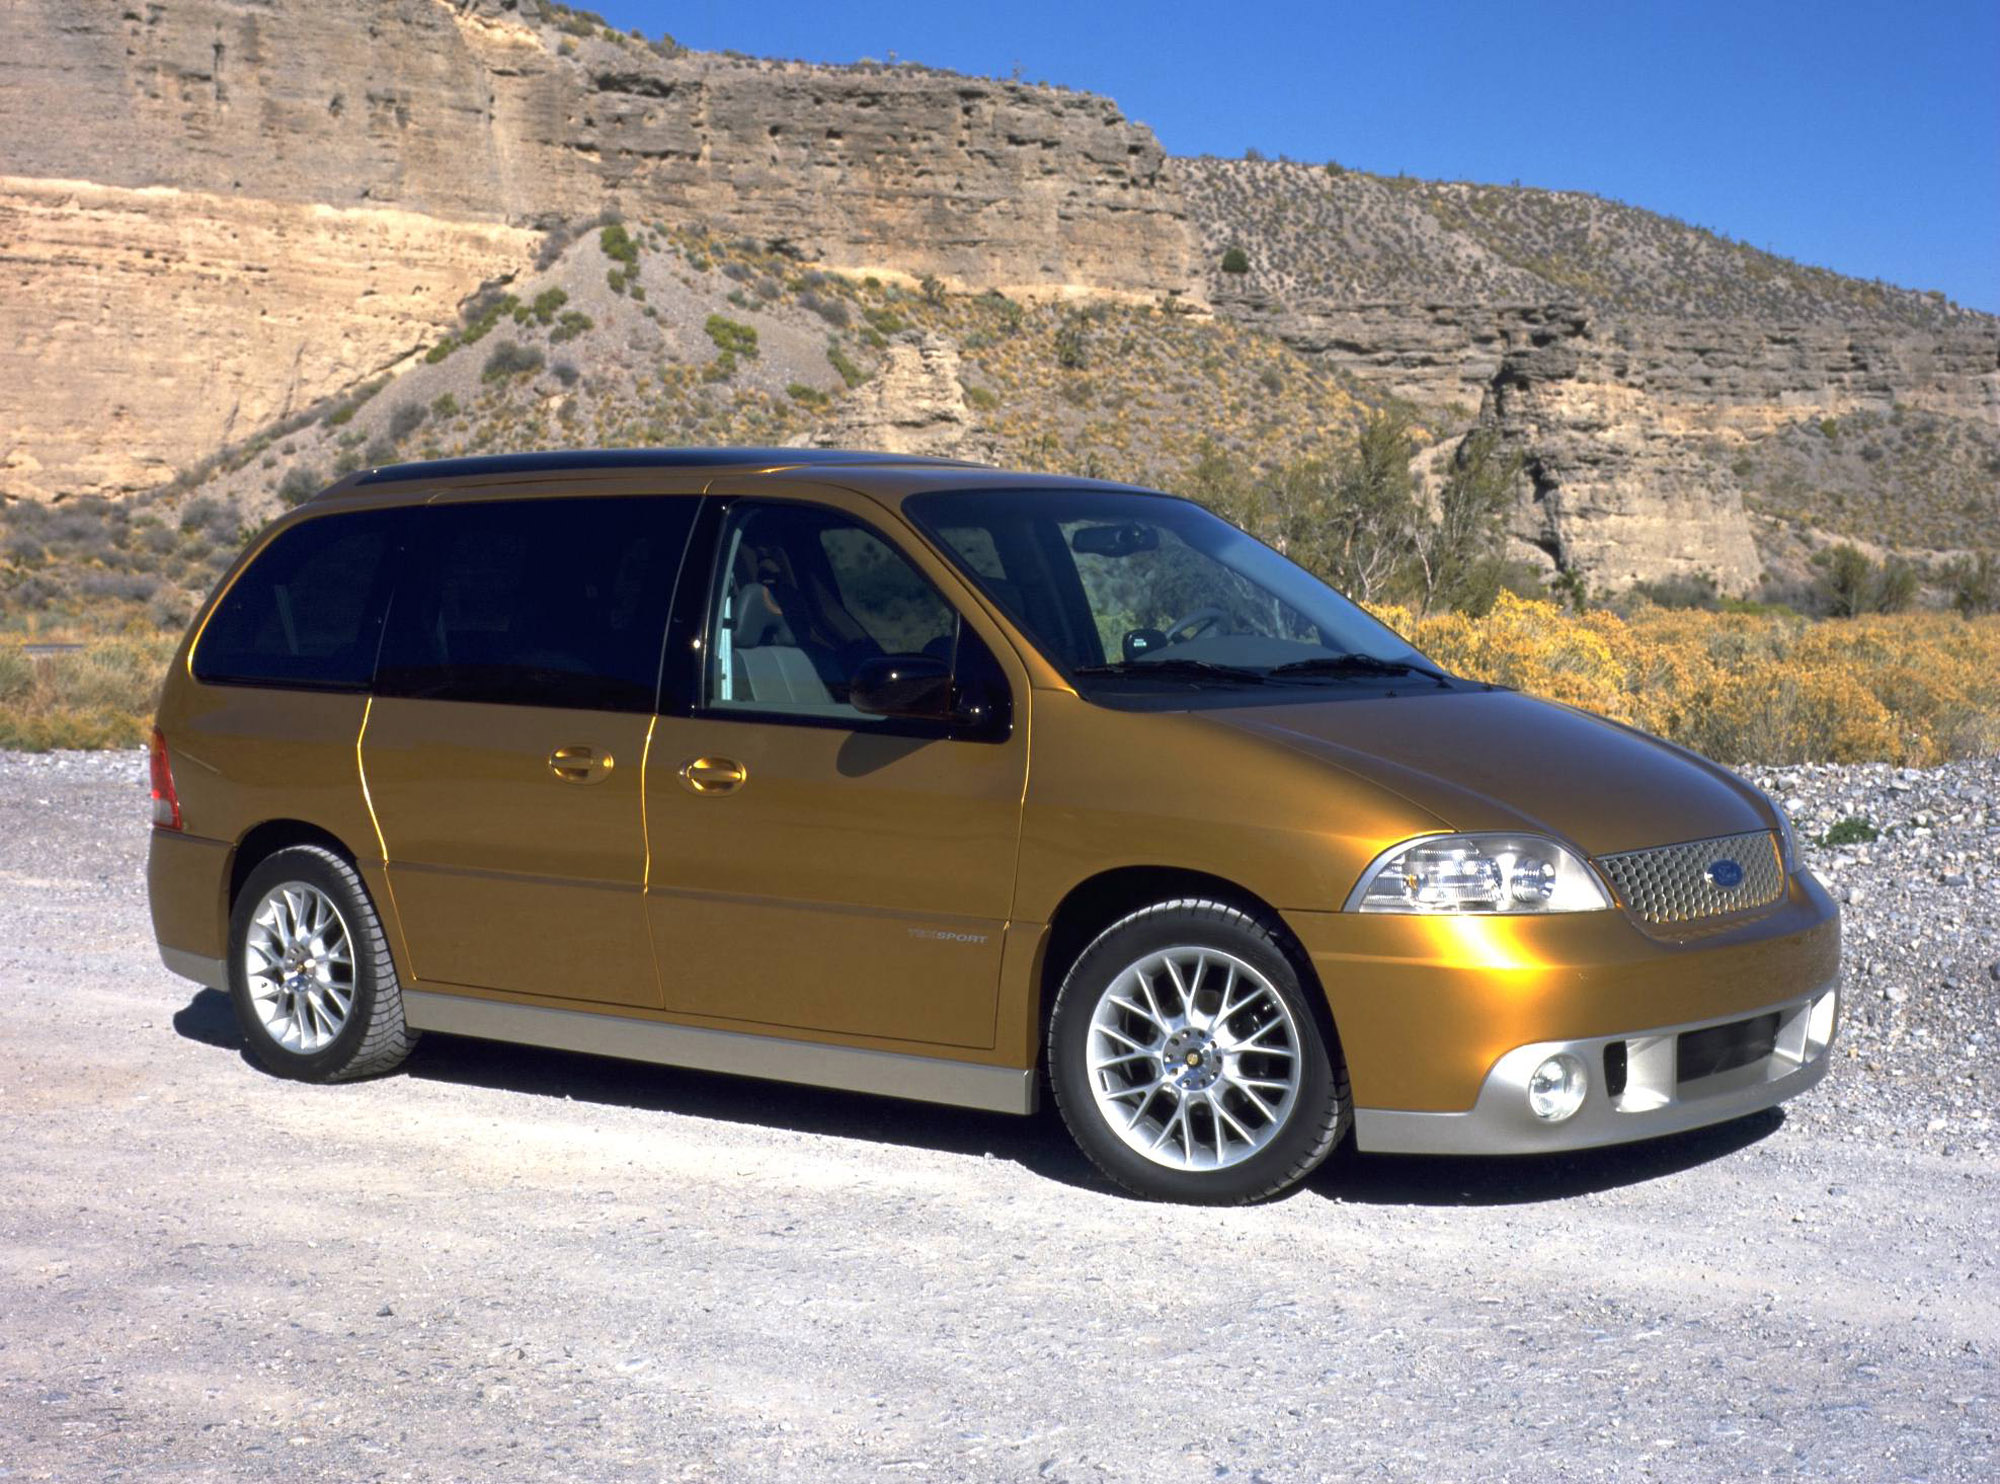 ford windstar 2013 review amazing pictures and images look at the car. Black Bedroom Furniture Sets. Home Design Ideas